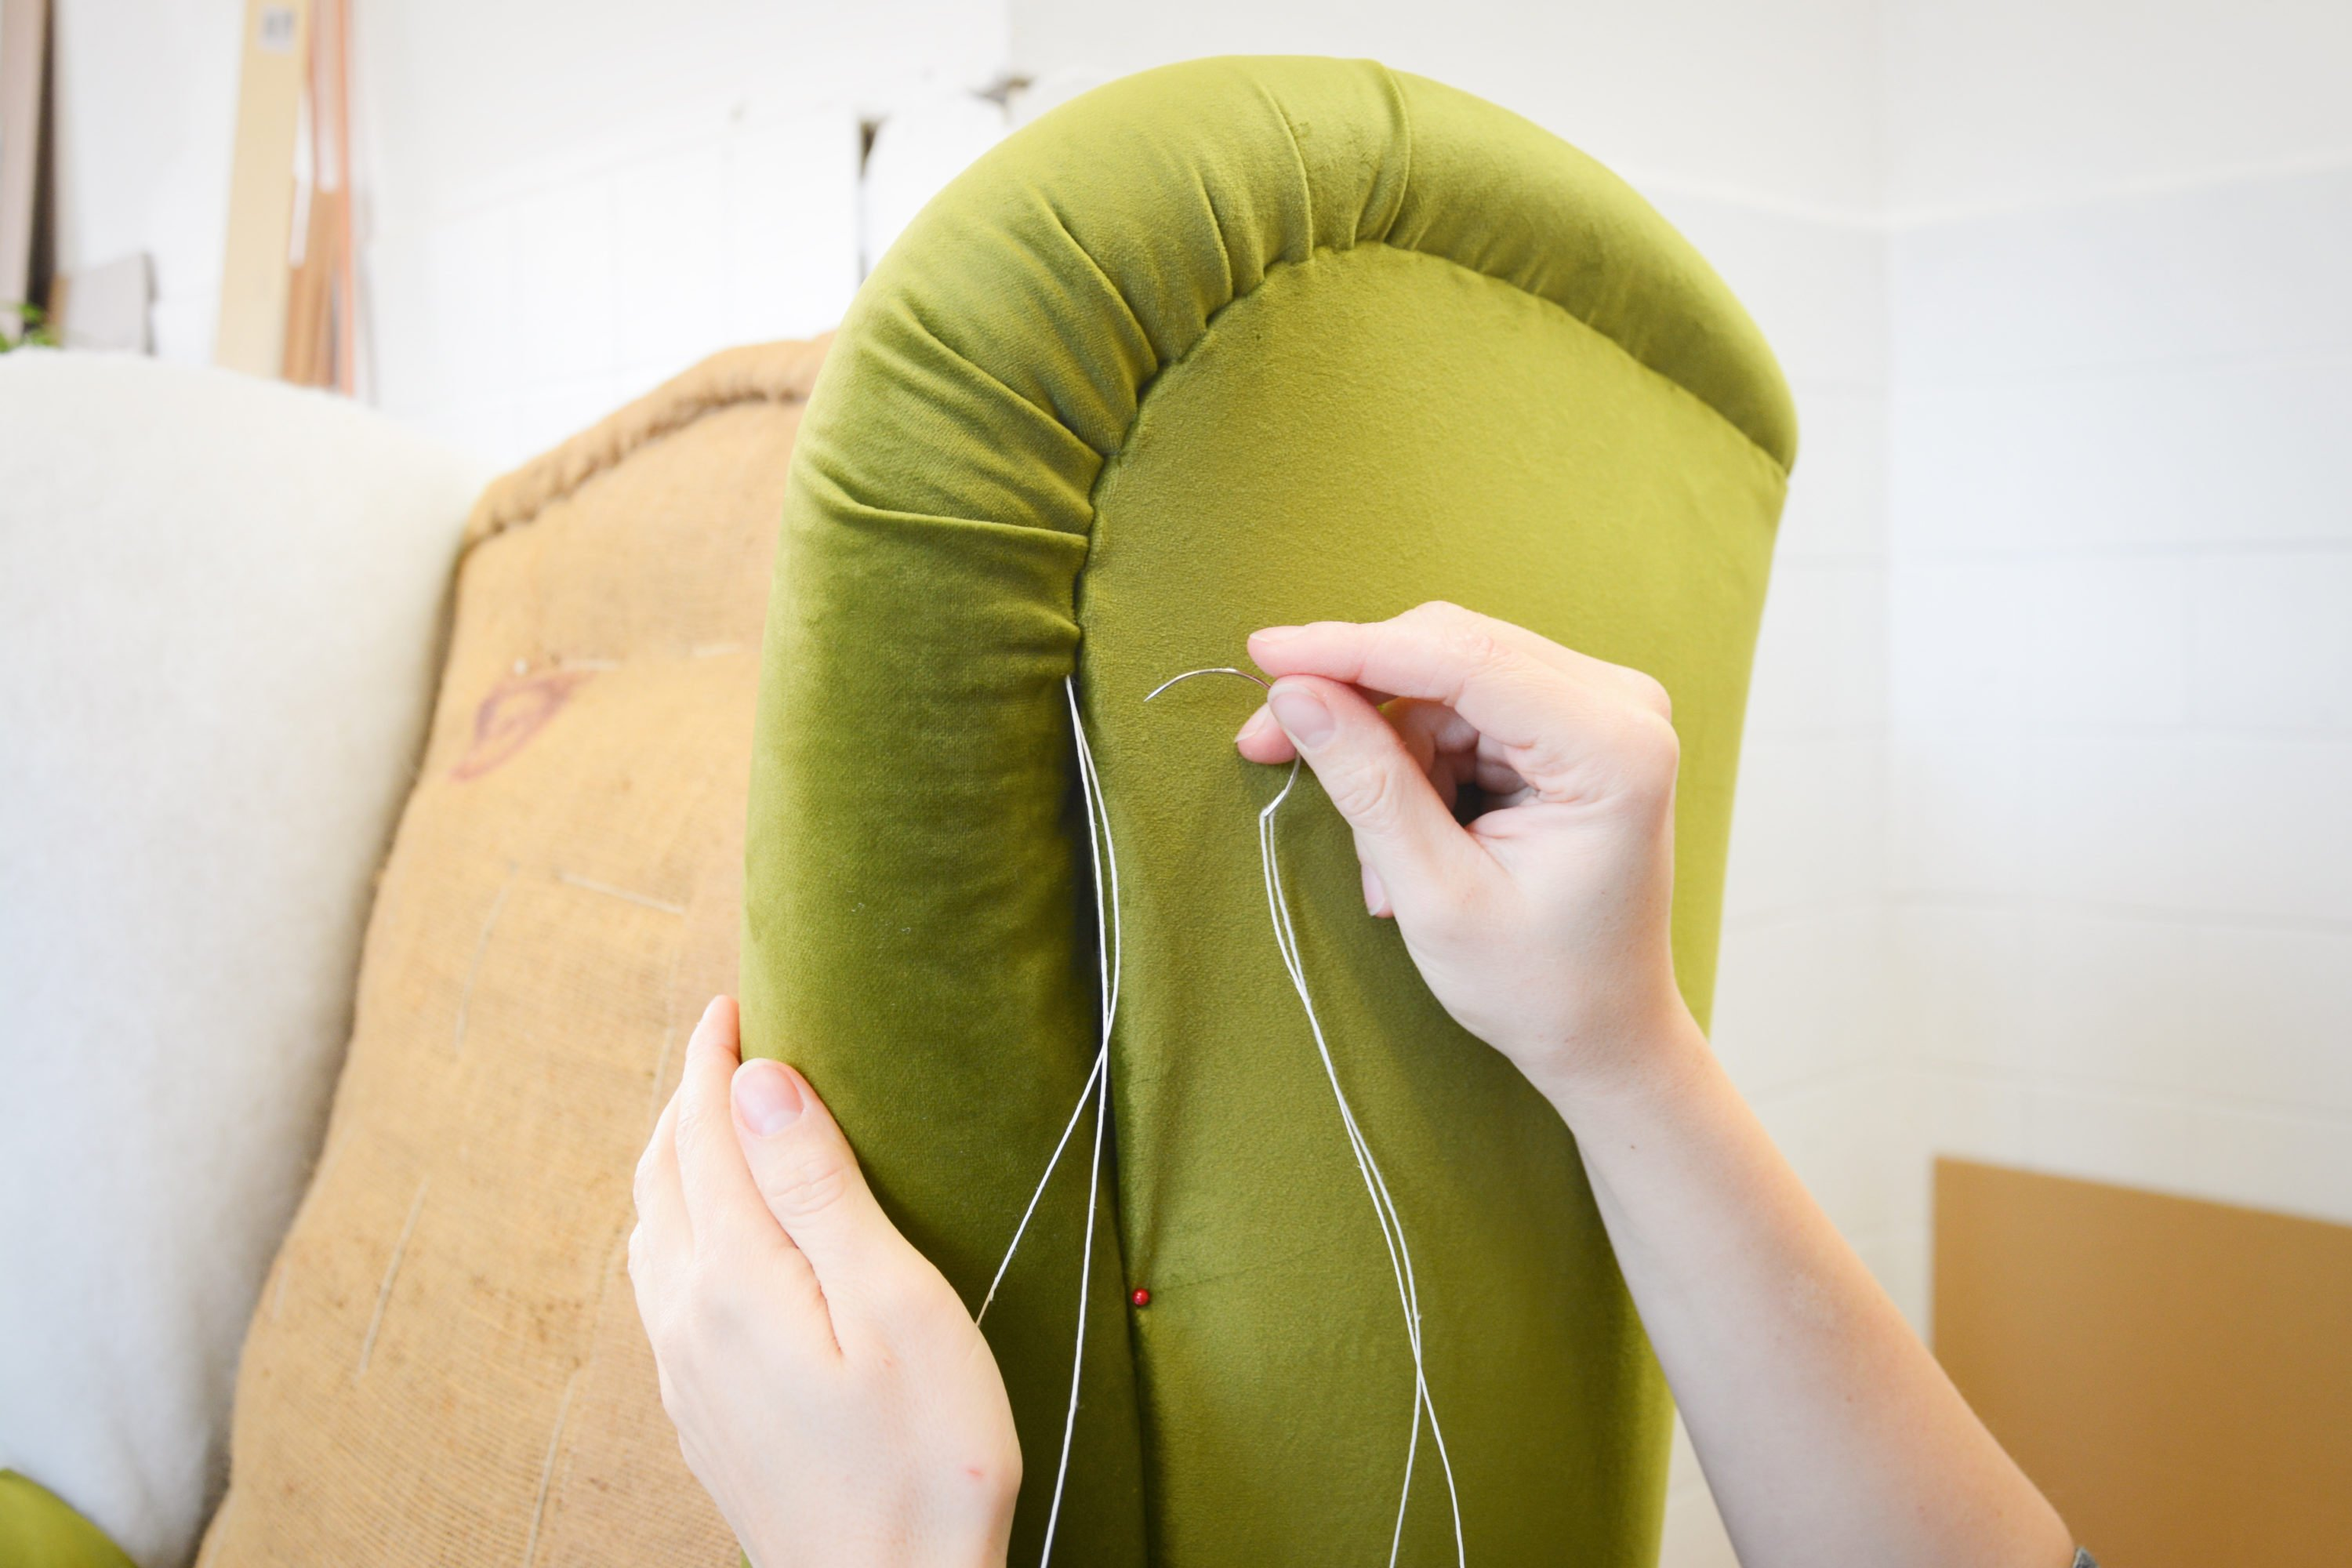 Person upholstering Green winged-back chair